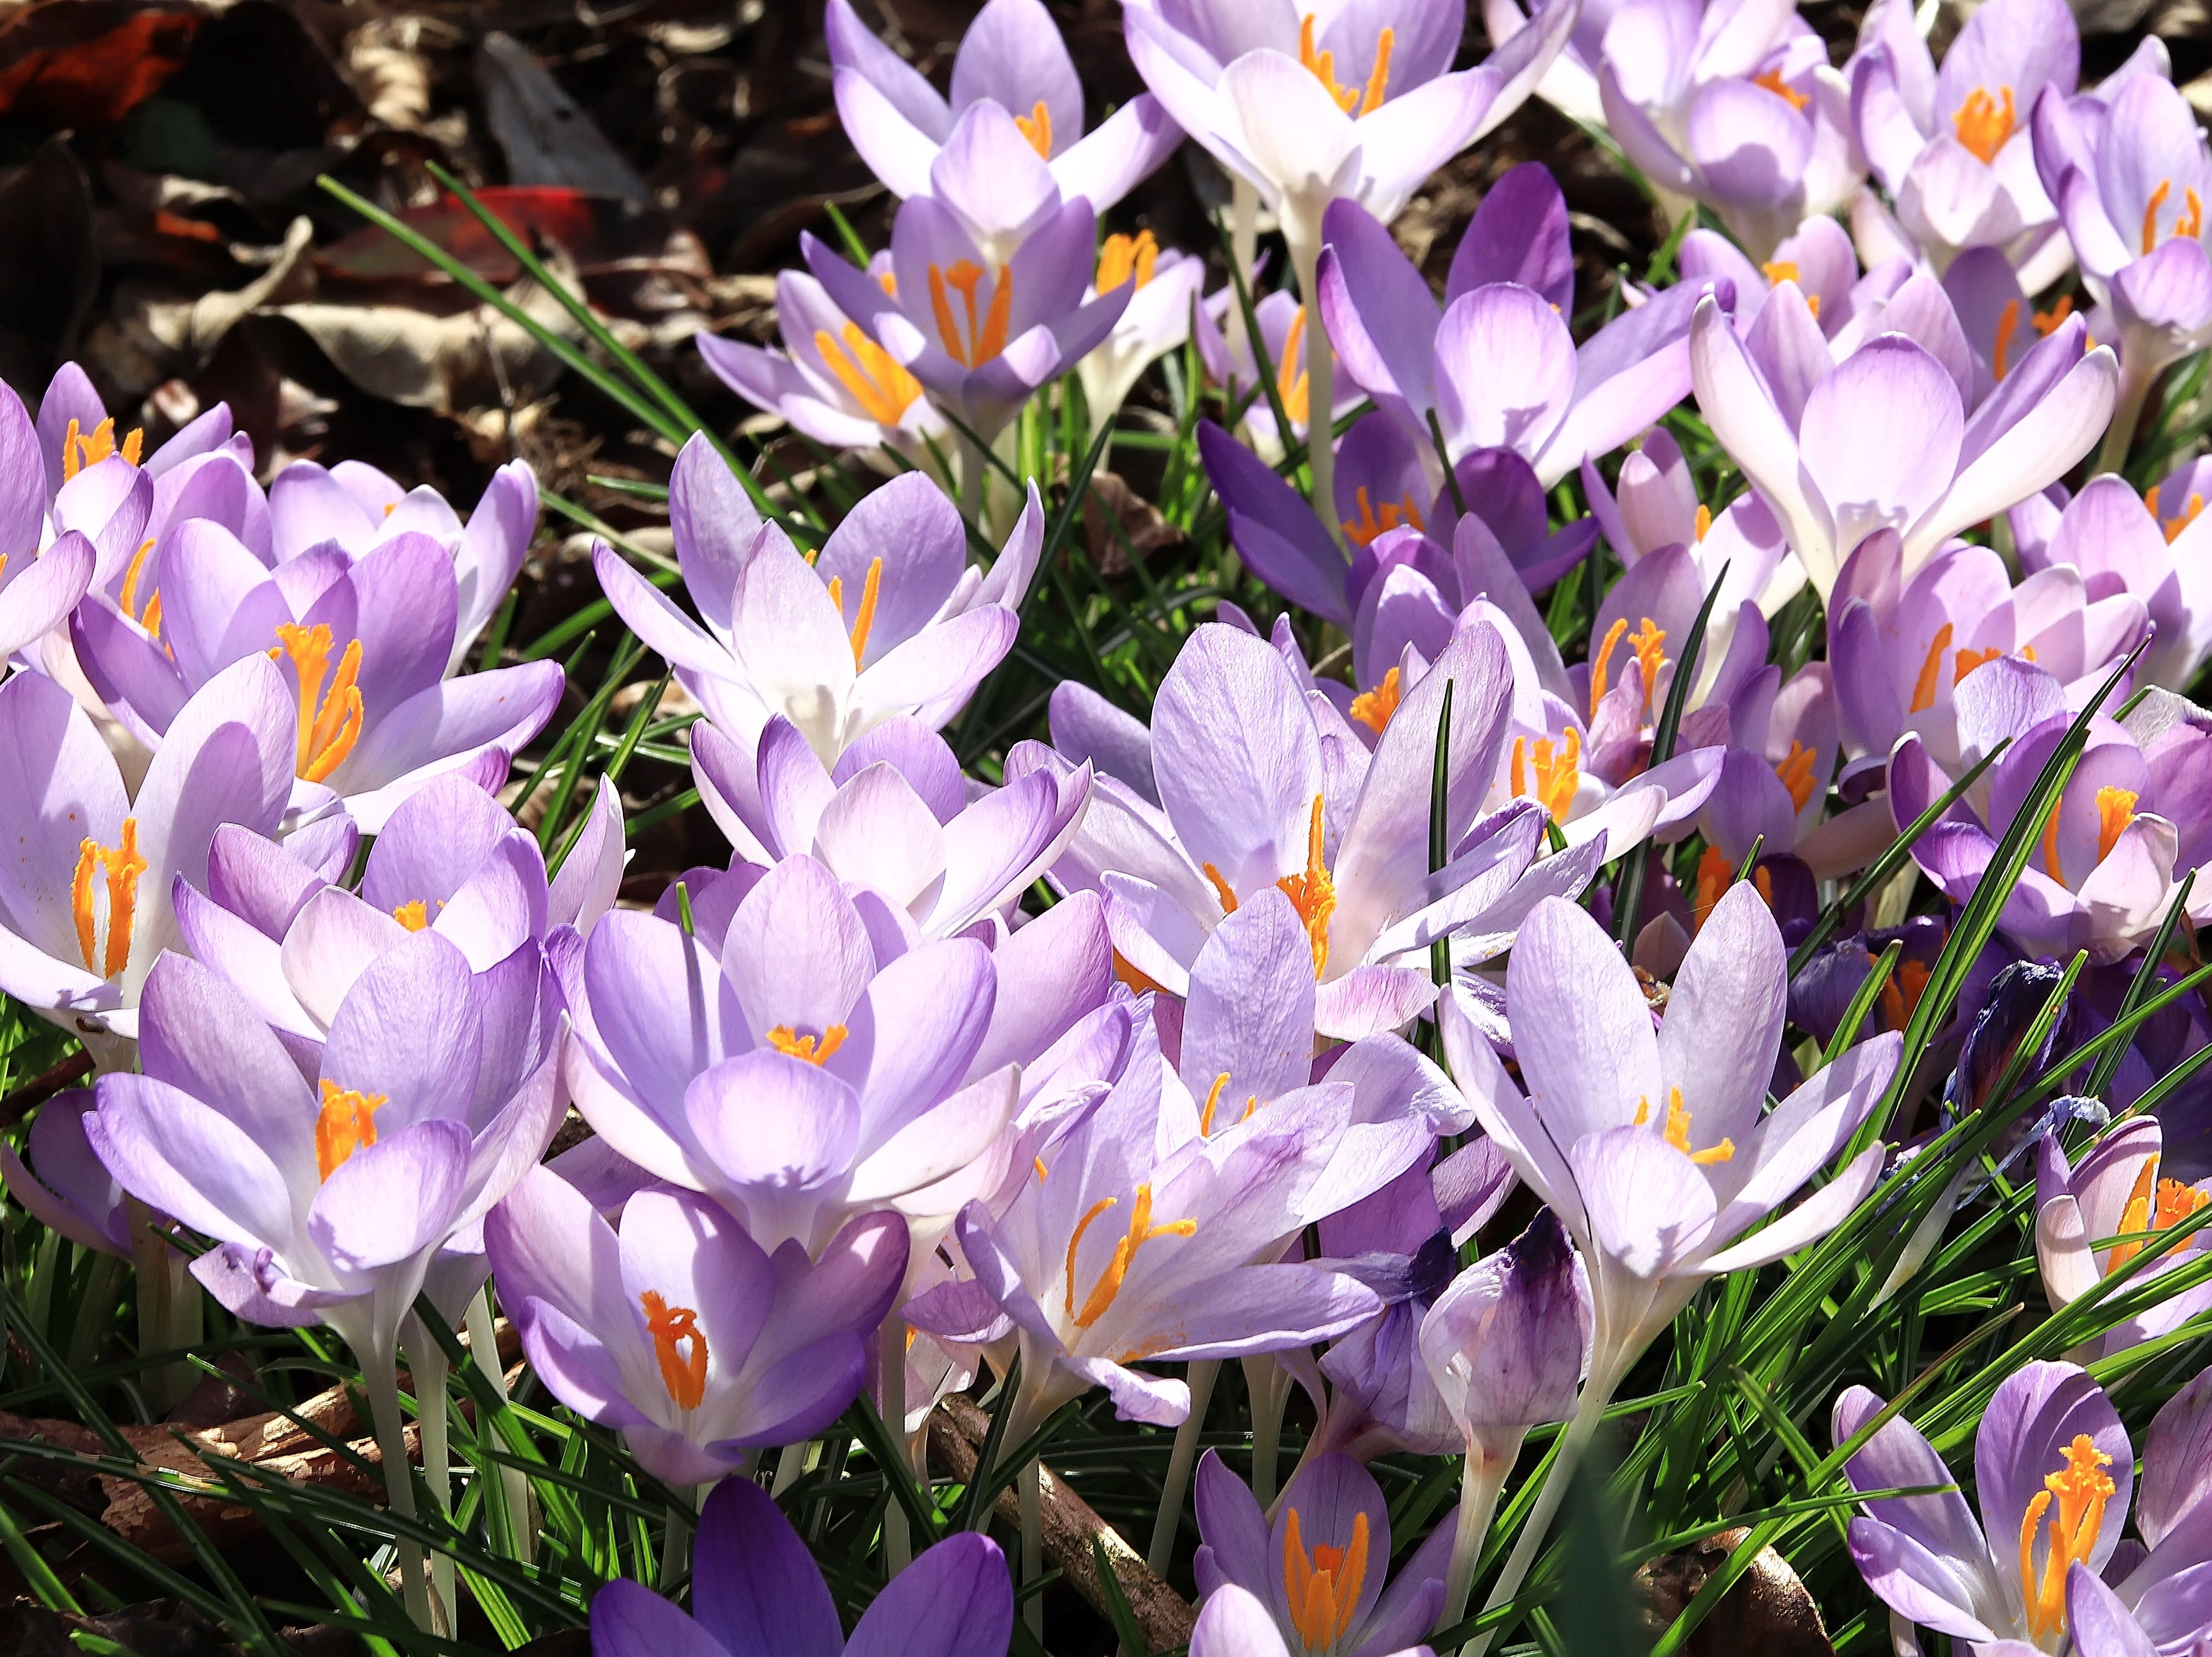 Patricia Serio photographed these purple Crocus in early March 2019 as a sure sign that spring is just around the corner.